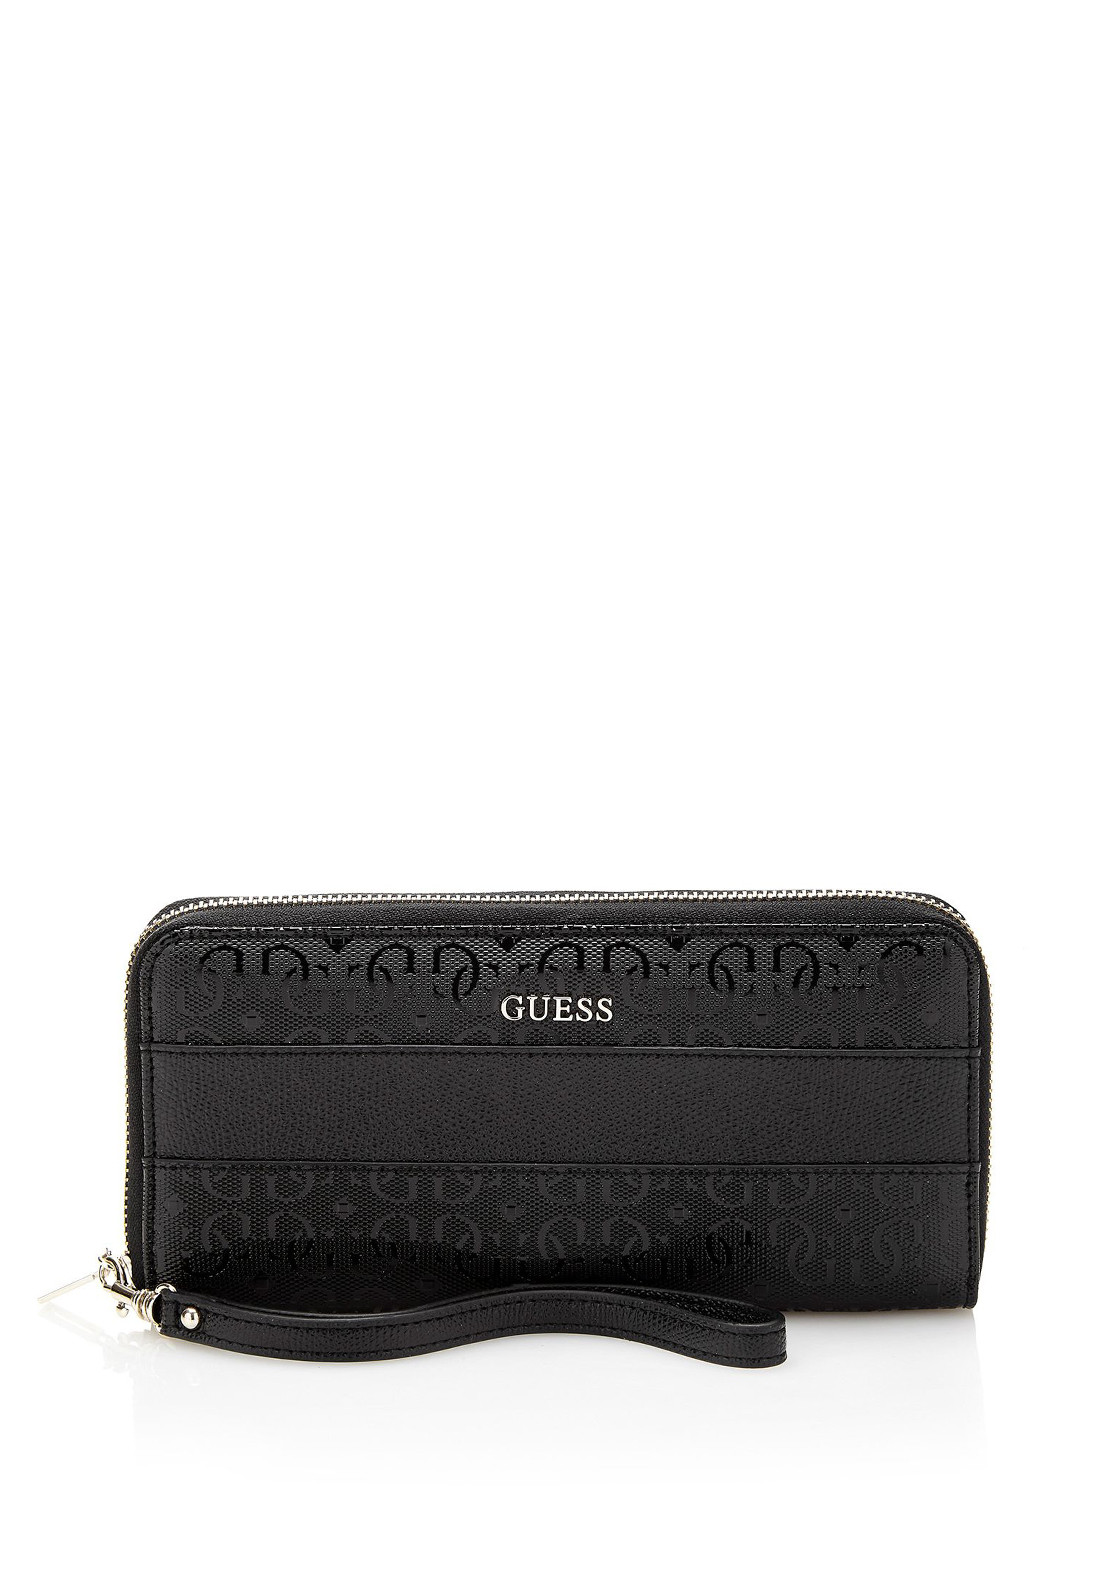 Guess Janette Zip around Medium Wristlet Purse, Black